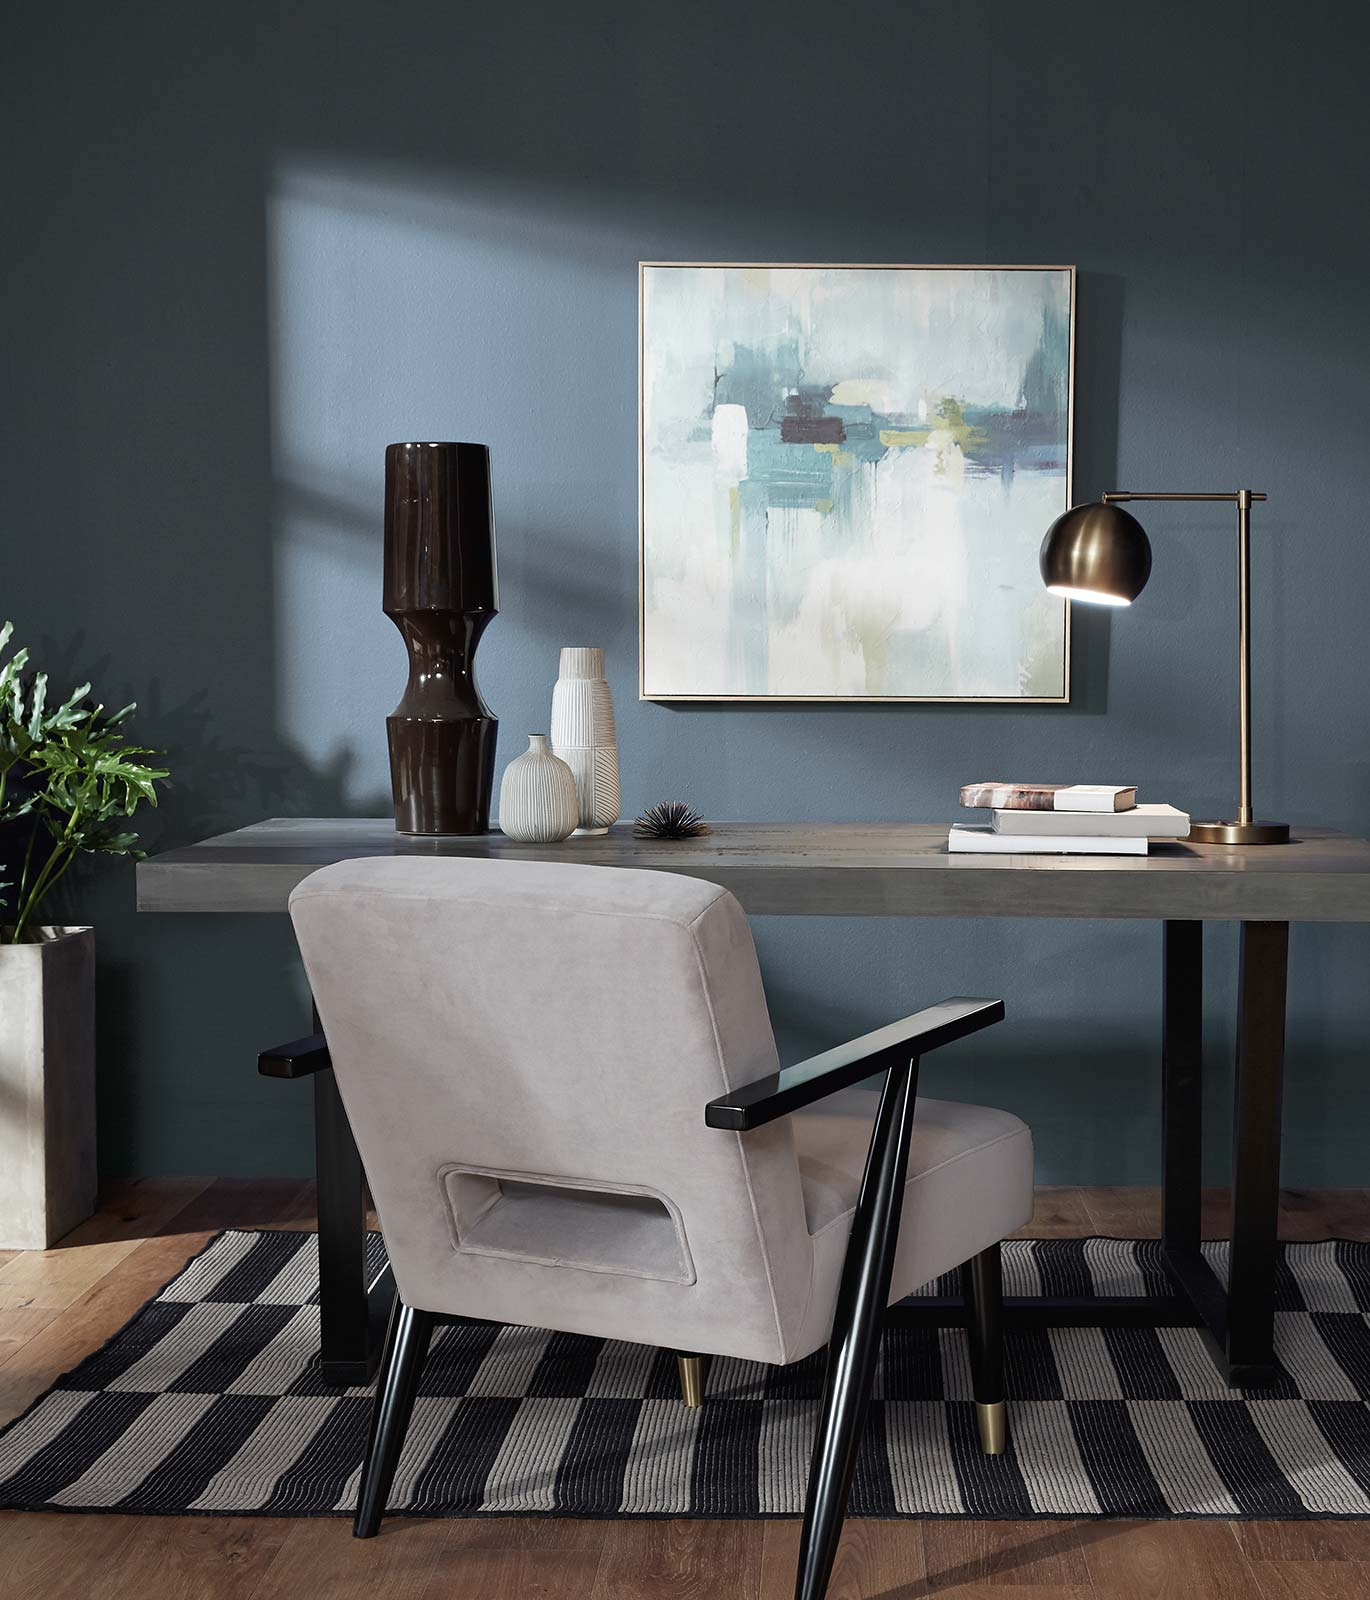 BEHR Color Trends 2021 Calm Zone Interior Color Inspiration